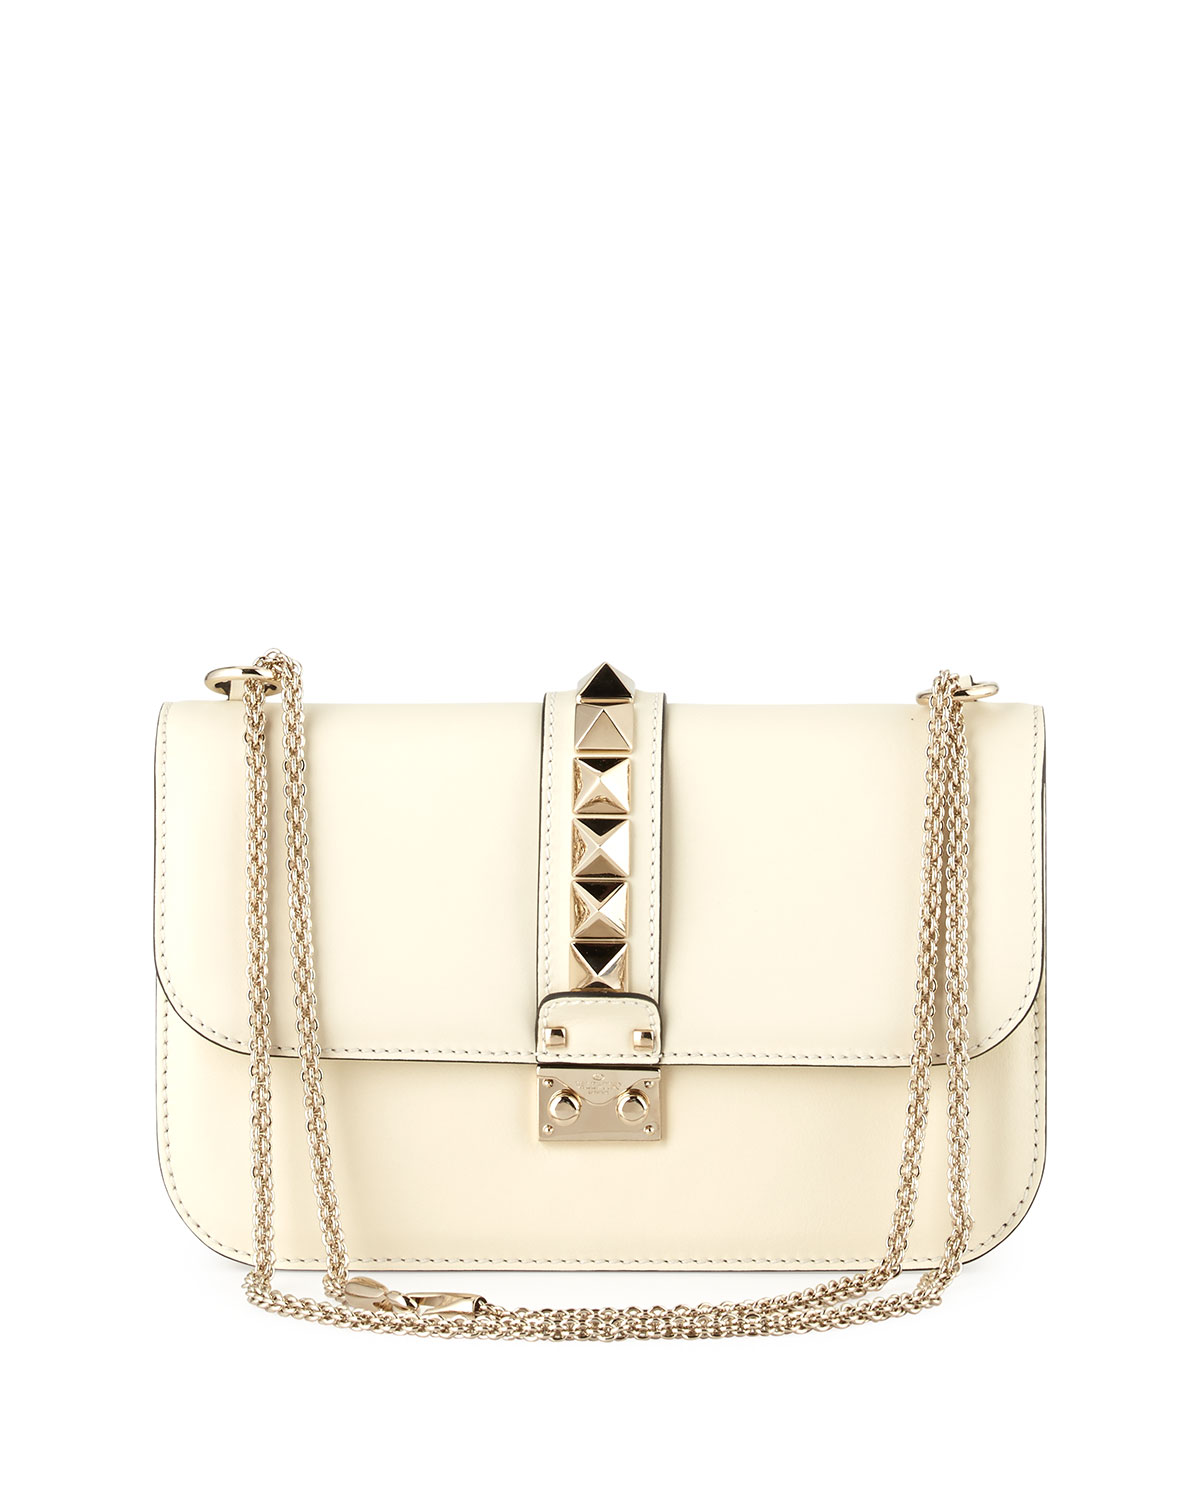 Medium Rockstud Lock Bag, Ivory, Size: M - Valentino